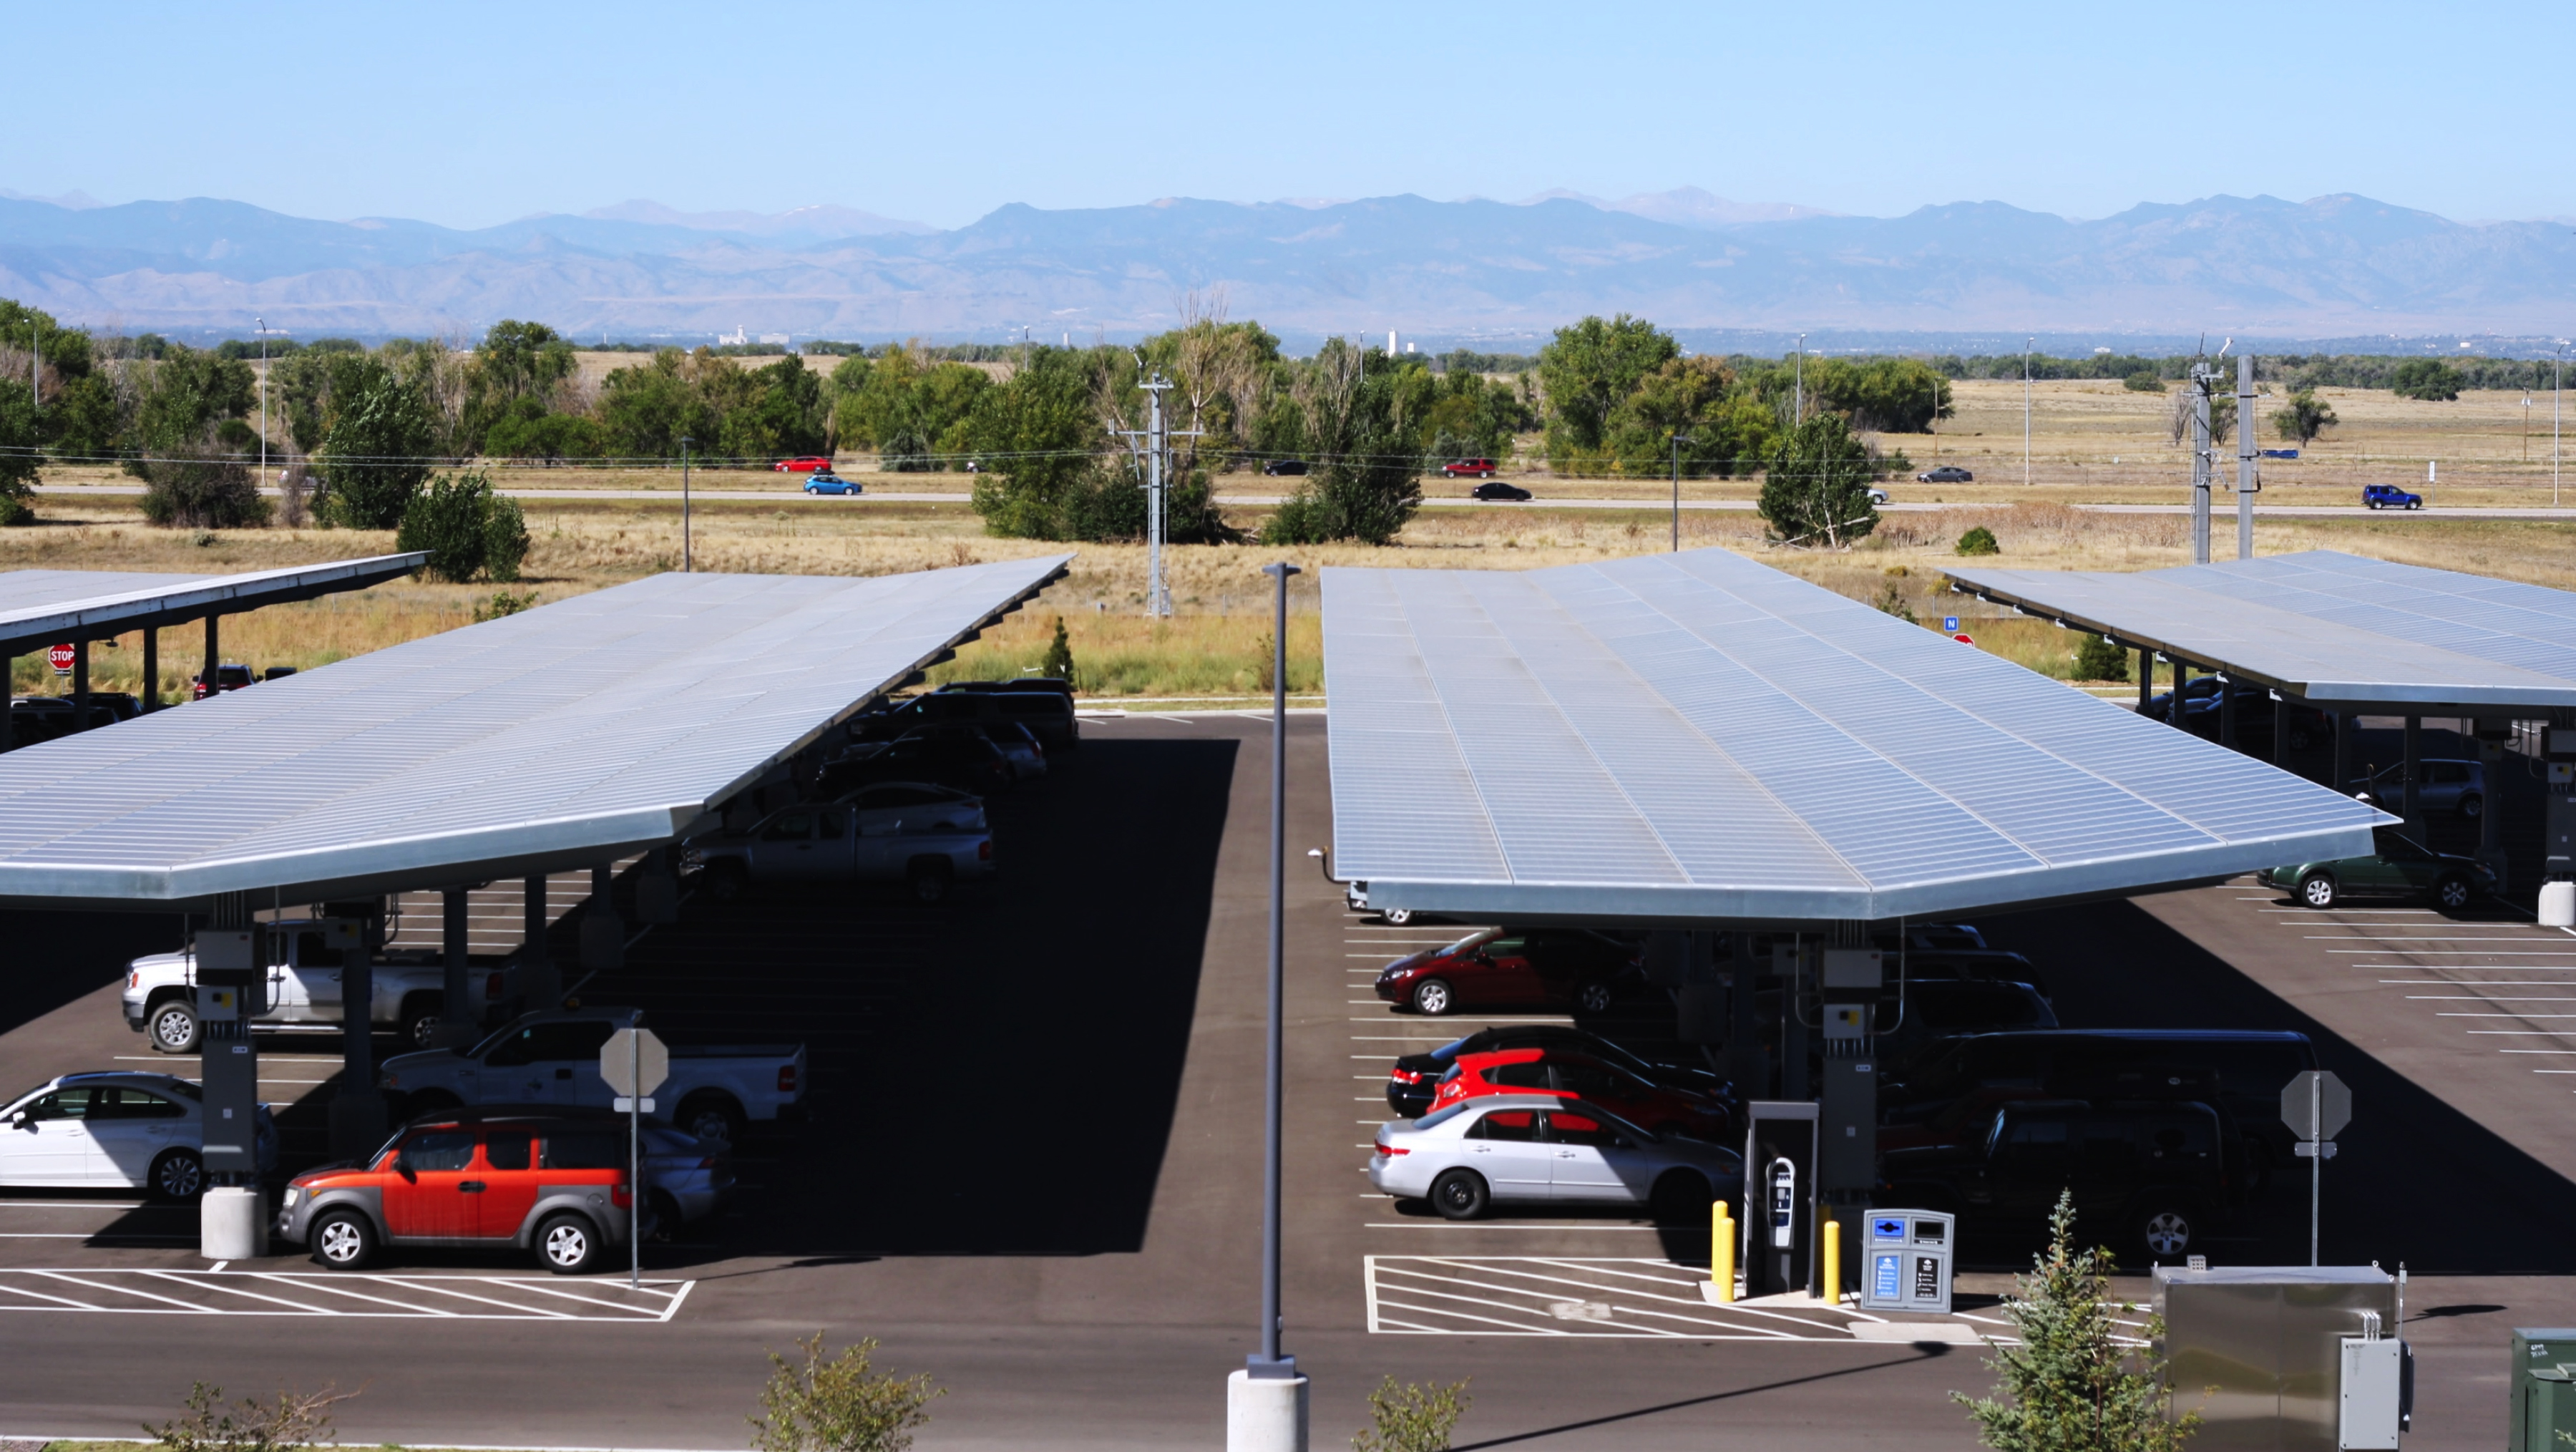 Solar canopies in a Denver car park (Panasonic image)